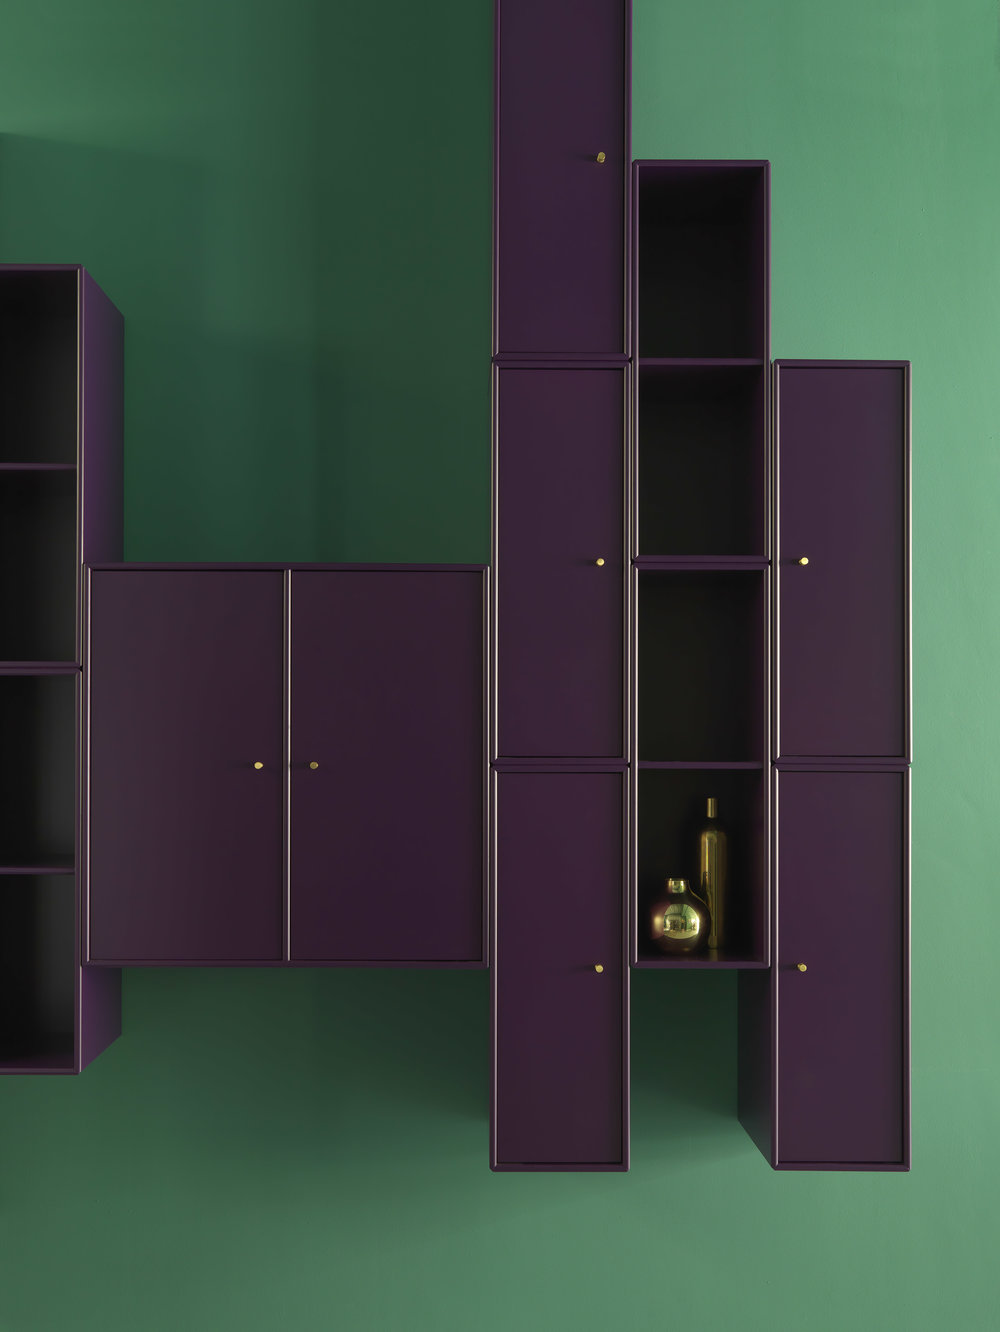 Montana designers Storage and shelving systems London Design Week home interior Scandinavian design Scandinavian home 4.jpg